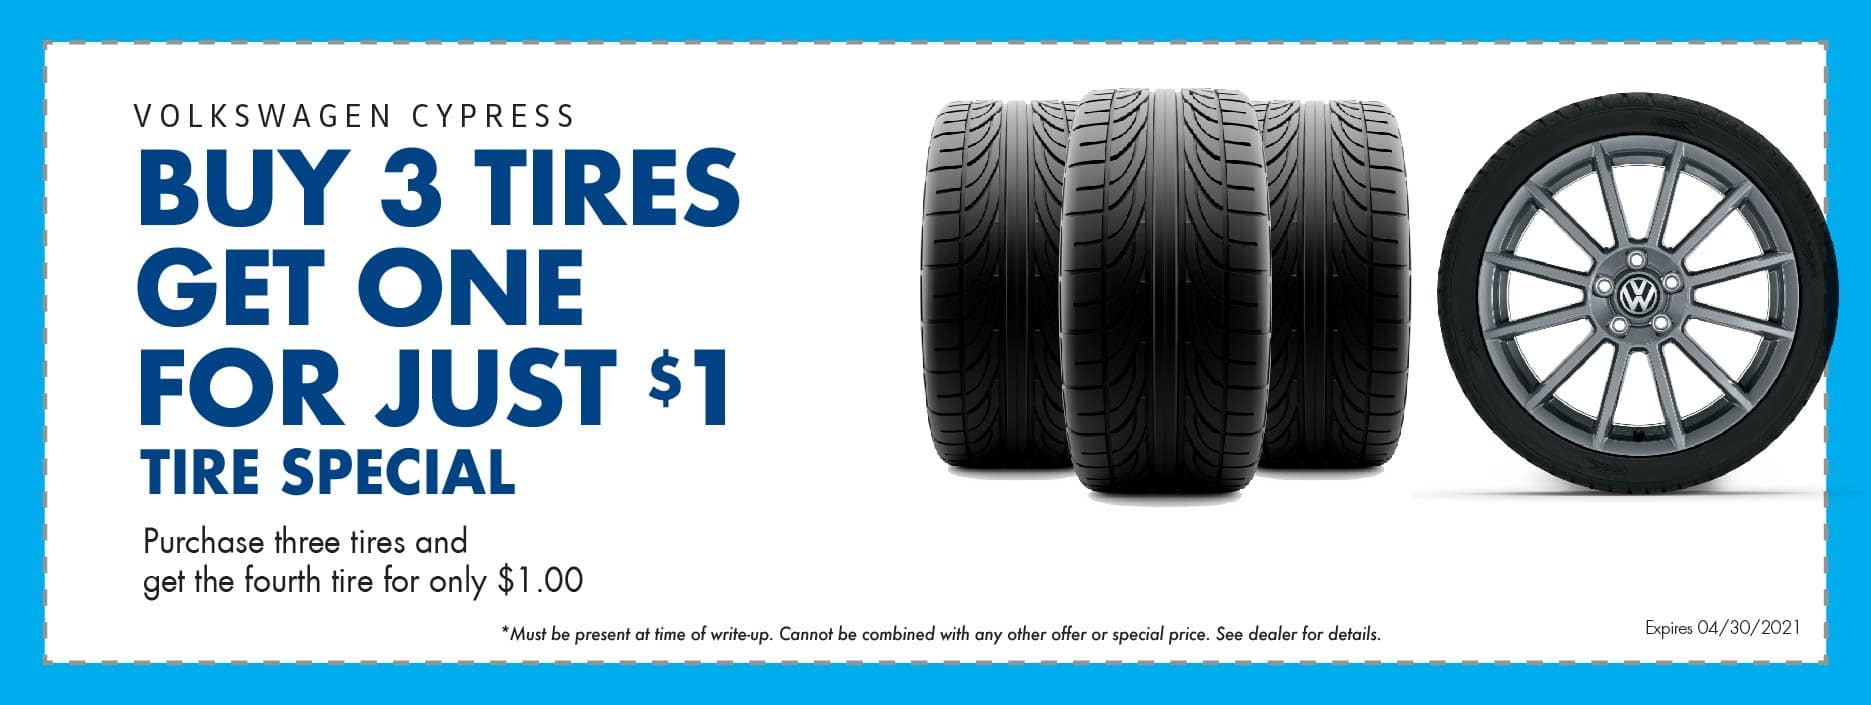 Buy 3 tires get the one for $1 at Volkswagen Cypress.